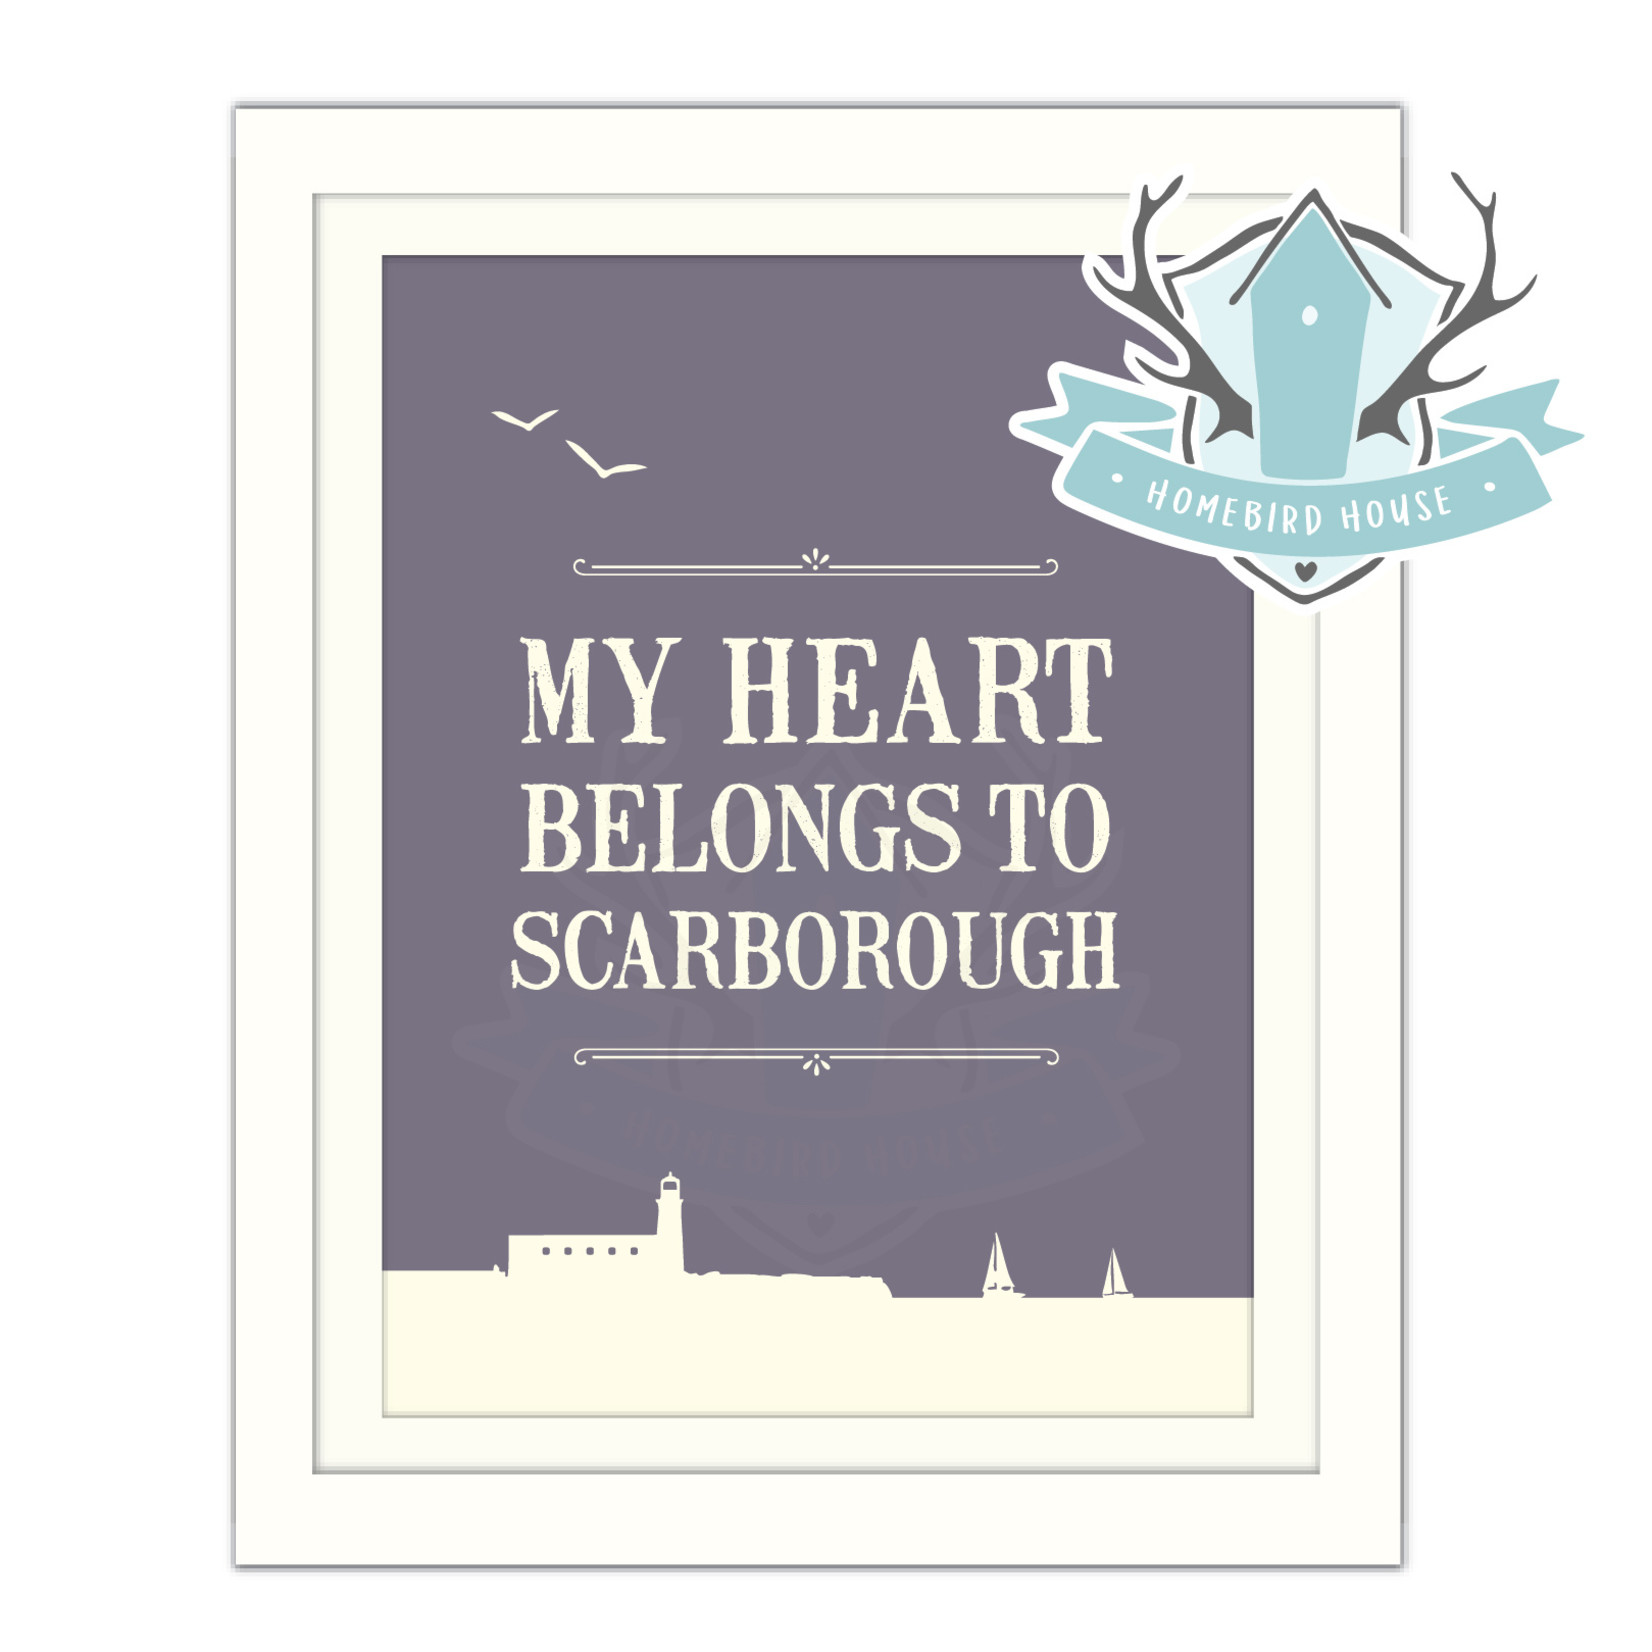 Homebird Pictures Homebird Extra Small TINY Print My Heart Belongs to Scarborough FRAMED